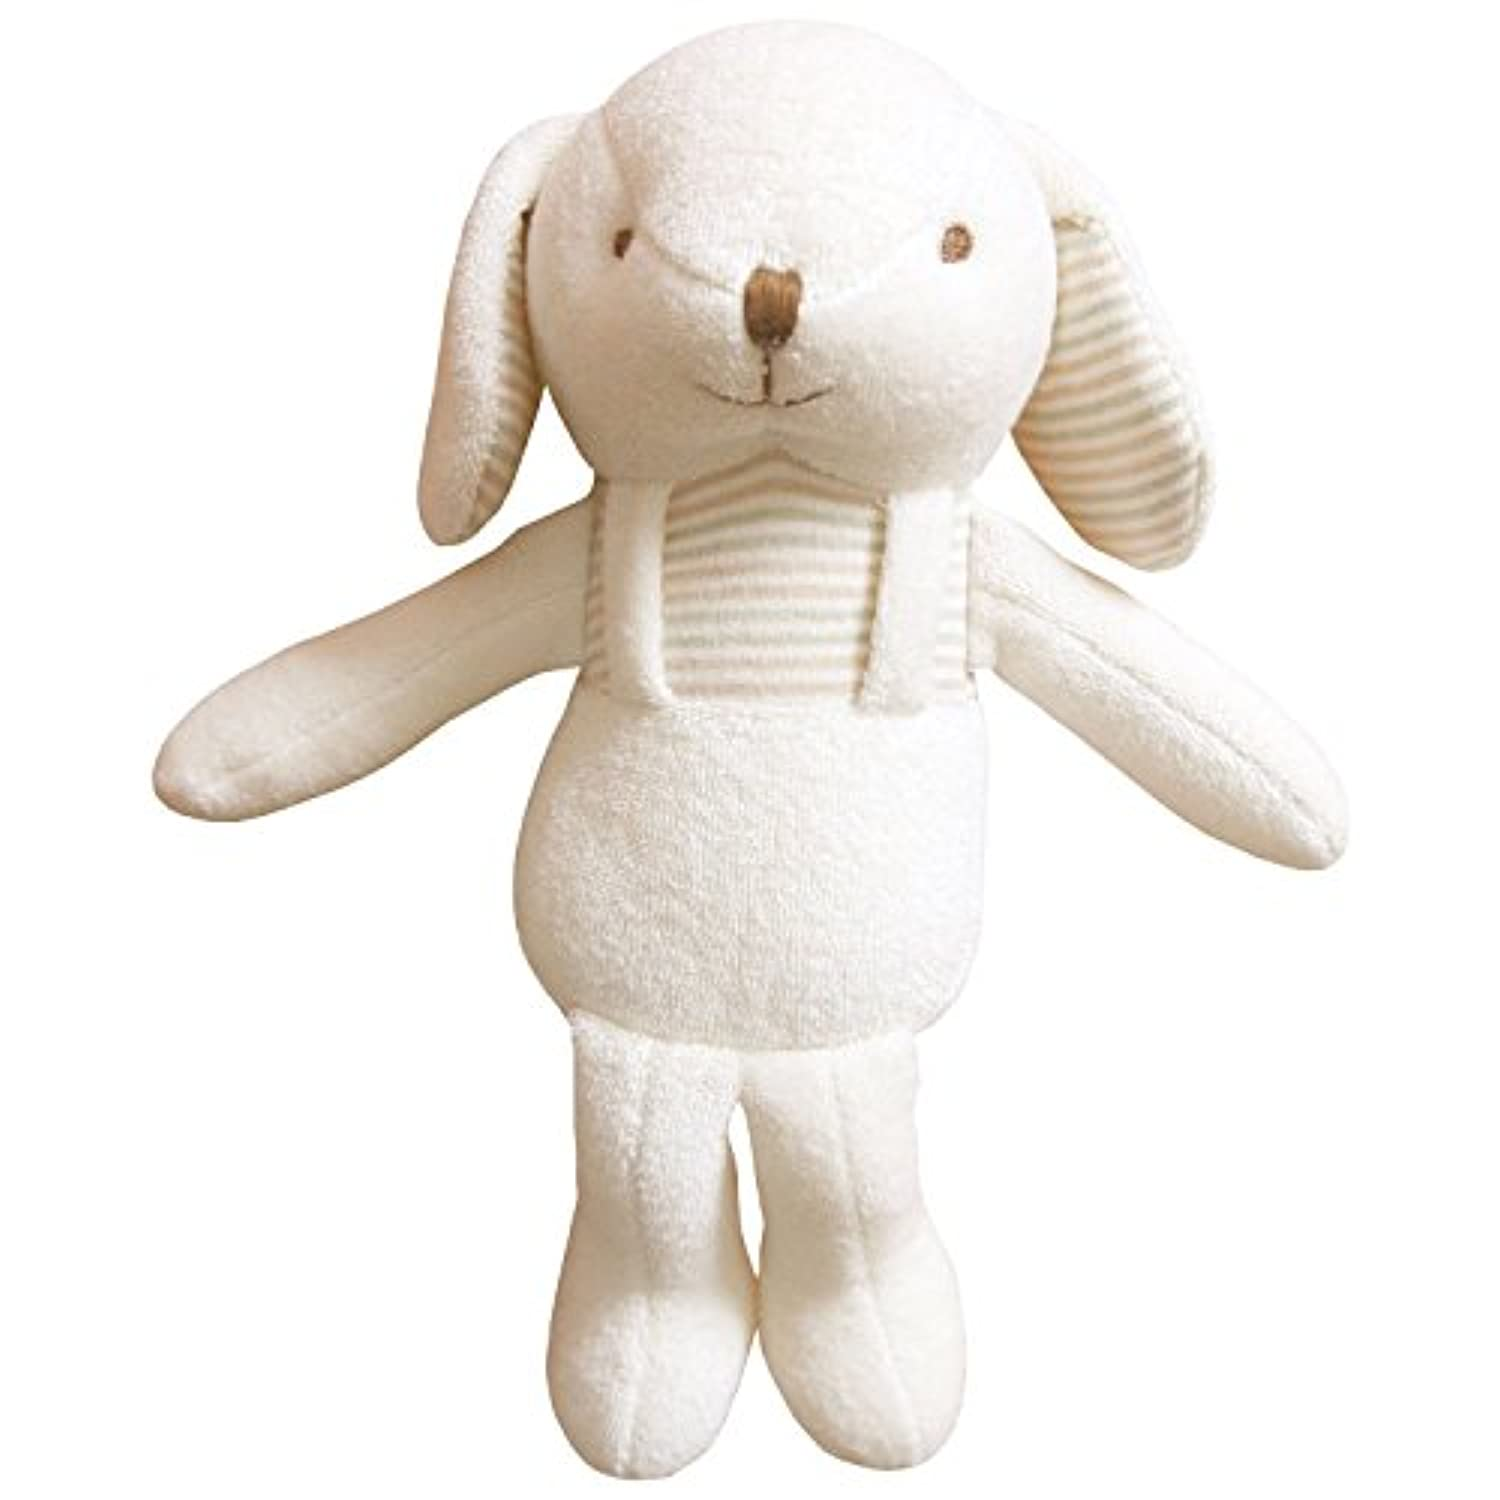 (Lovely Puppy)100% Certified Organic Cotton Fabric . Baby First Doll 11 inches (No Dyeing Natural Organic Cotton) by JOHN N TREE Organic